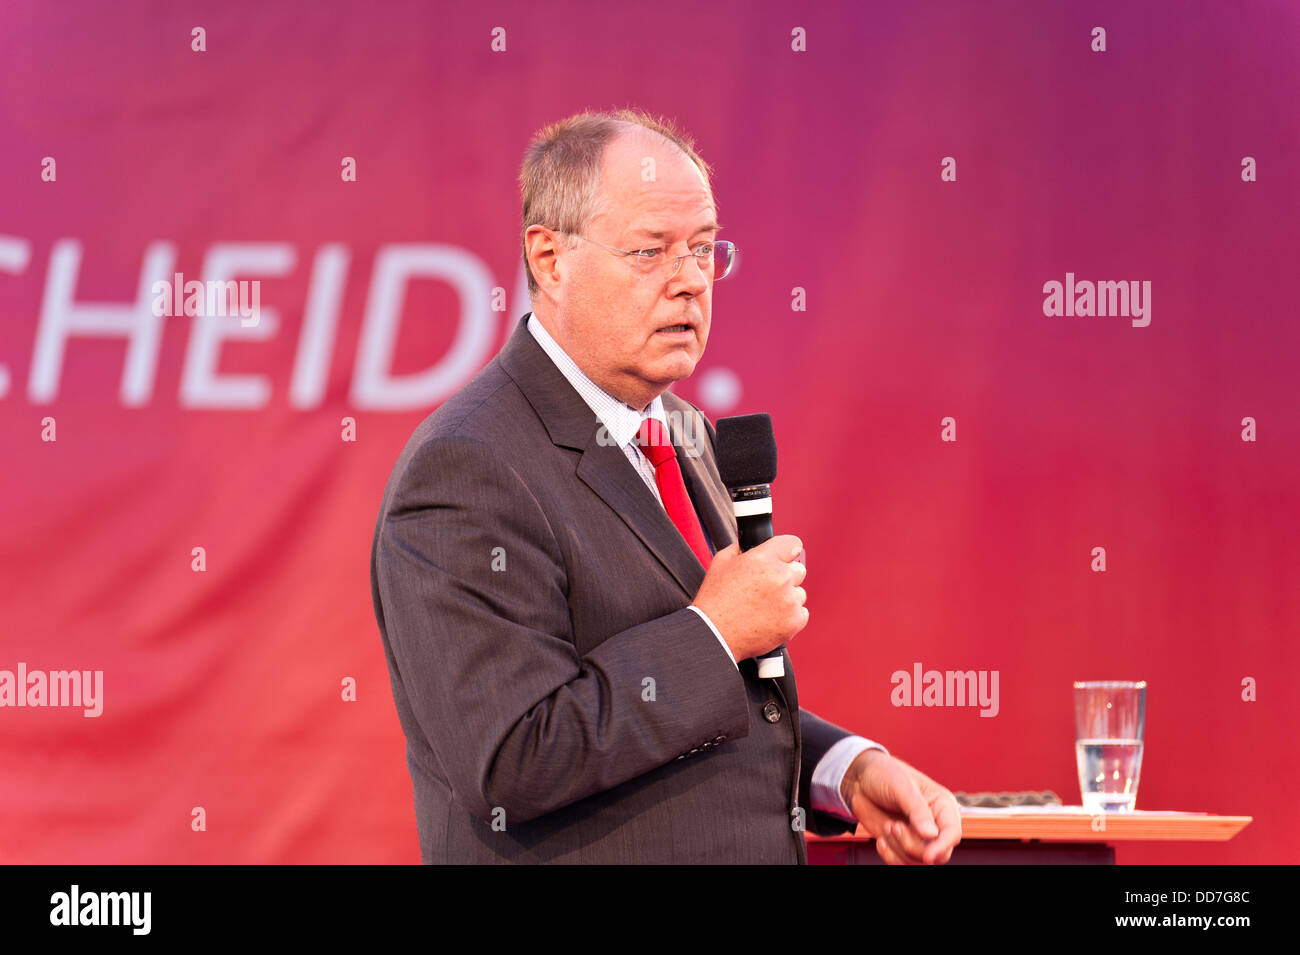 Kiel, Germany, 27. August, 2013, German Candidate for Chancellor Peer Steinbrück during an Election Campaign - Stock Image